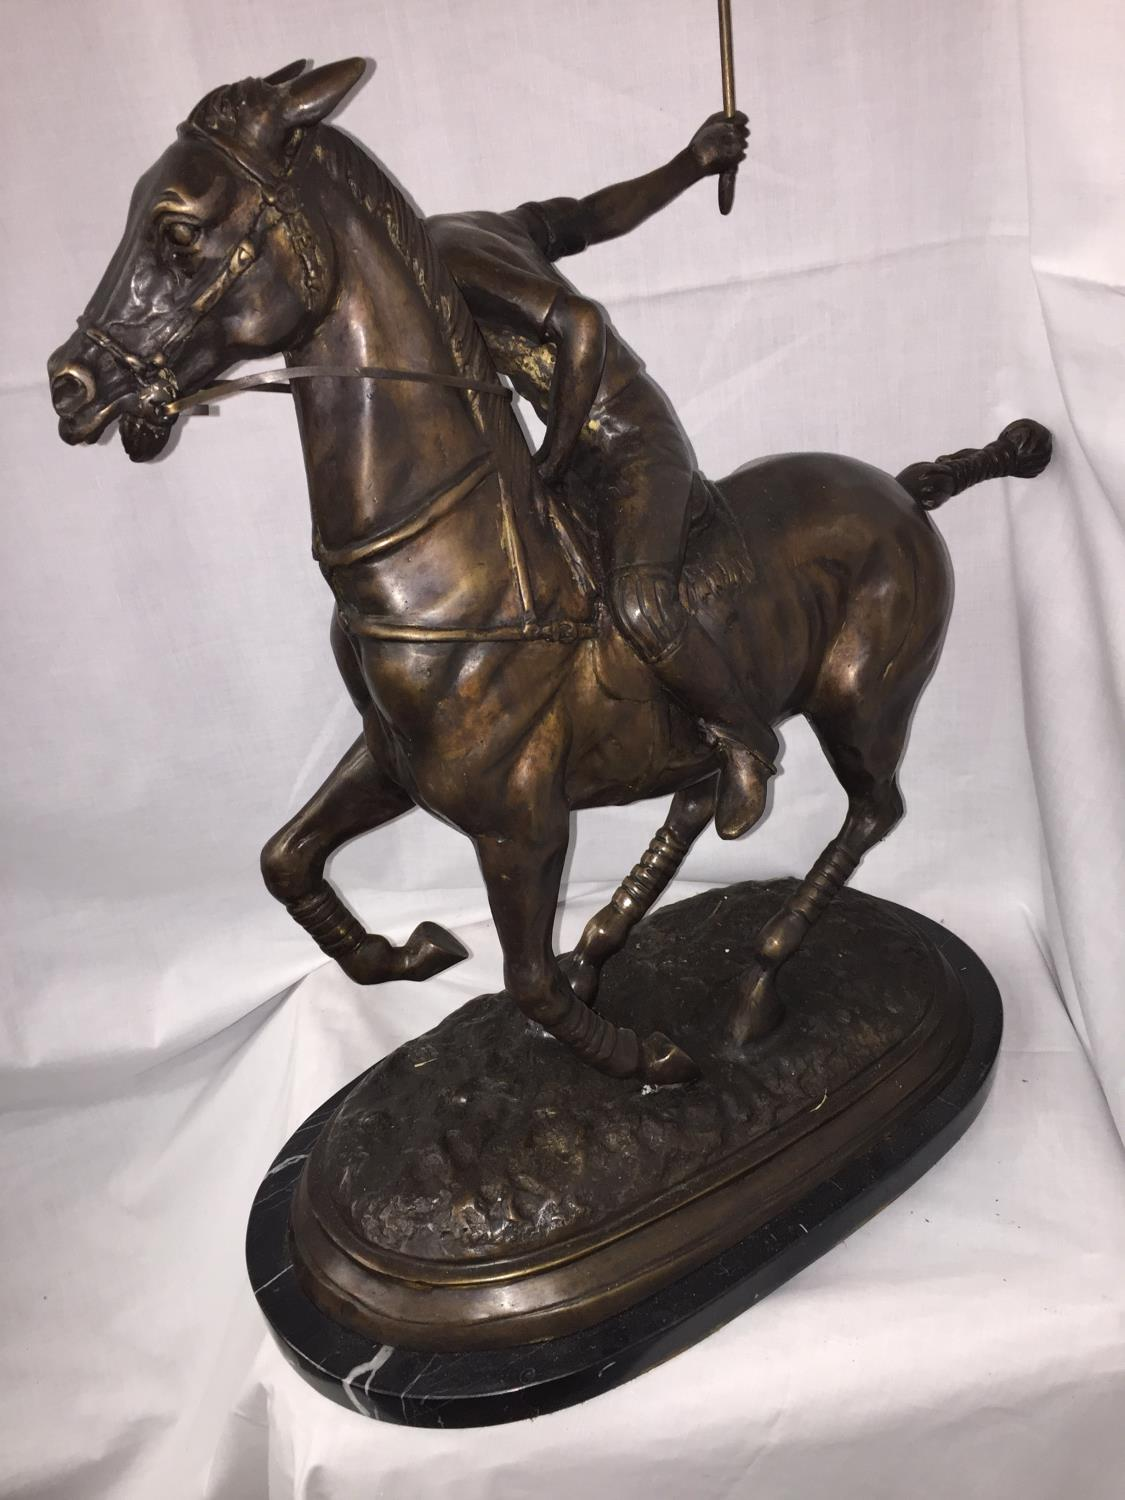 A LARGE BRONZE STATUE OF A POLO PLAYER ON A MARBLE BASE 54CM LENGTH (TAIL TO NOSE) X 60CM HEIGHT - Image 3 of 4